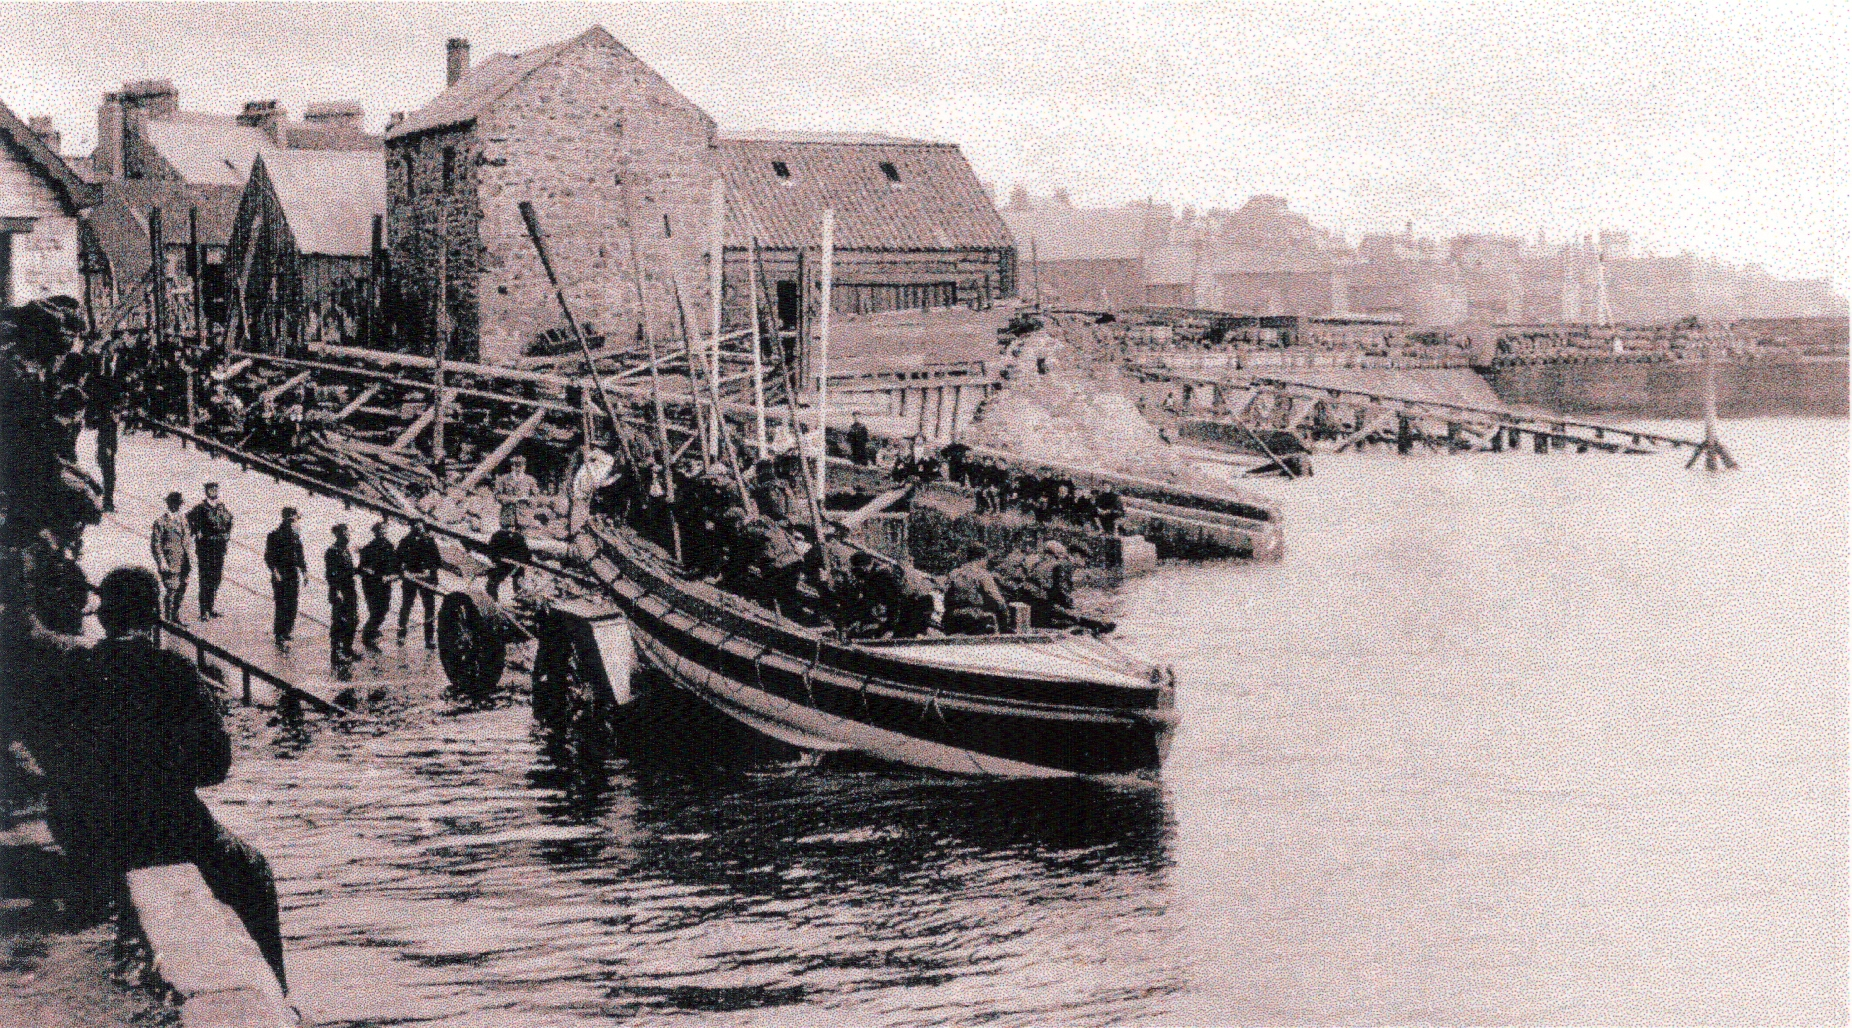 Launch of Lifeboat in Anstruther